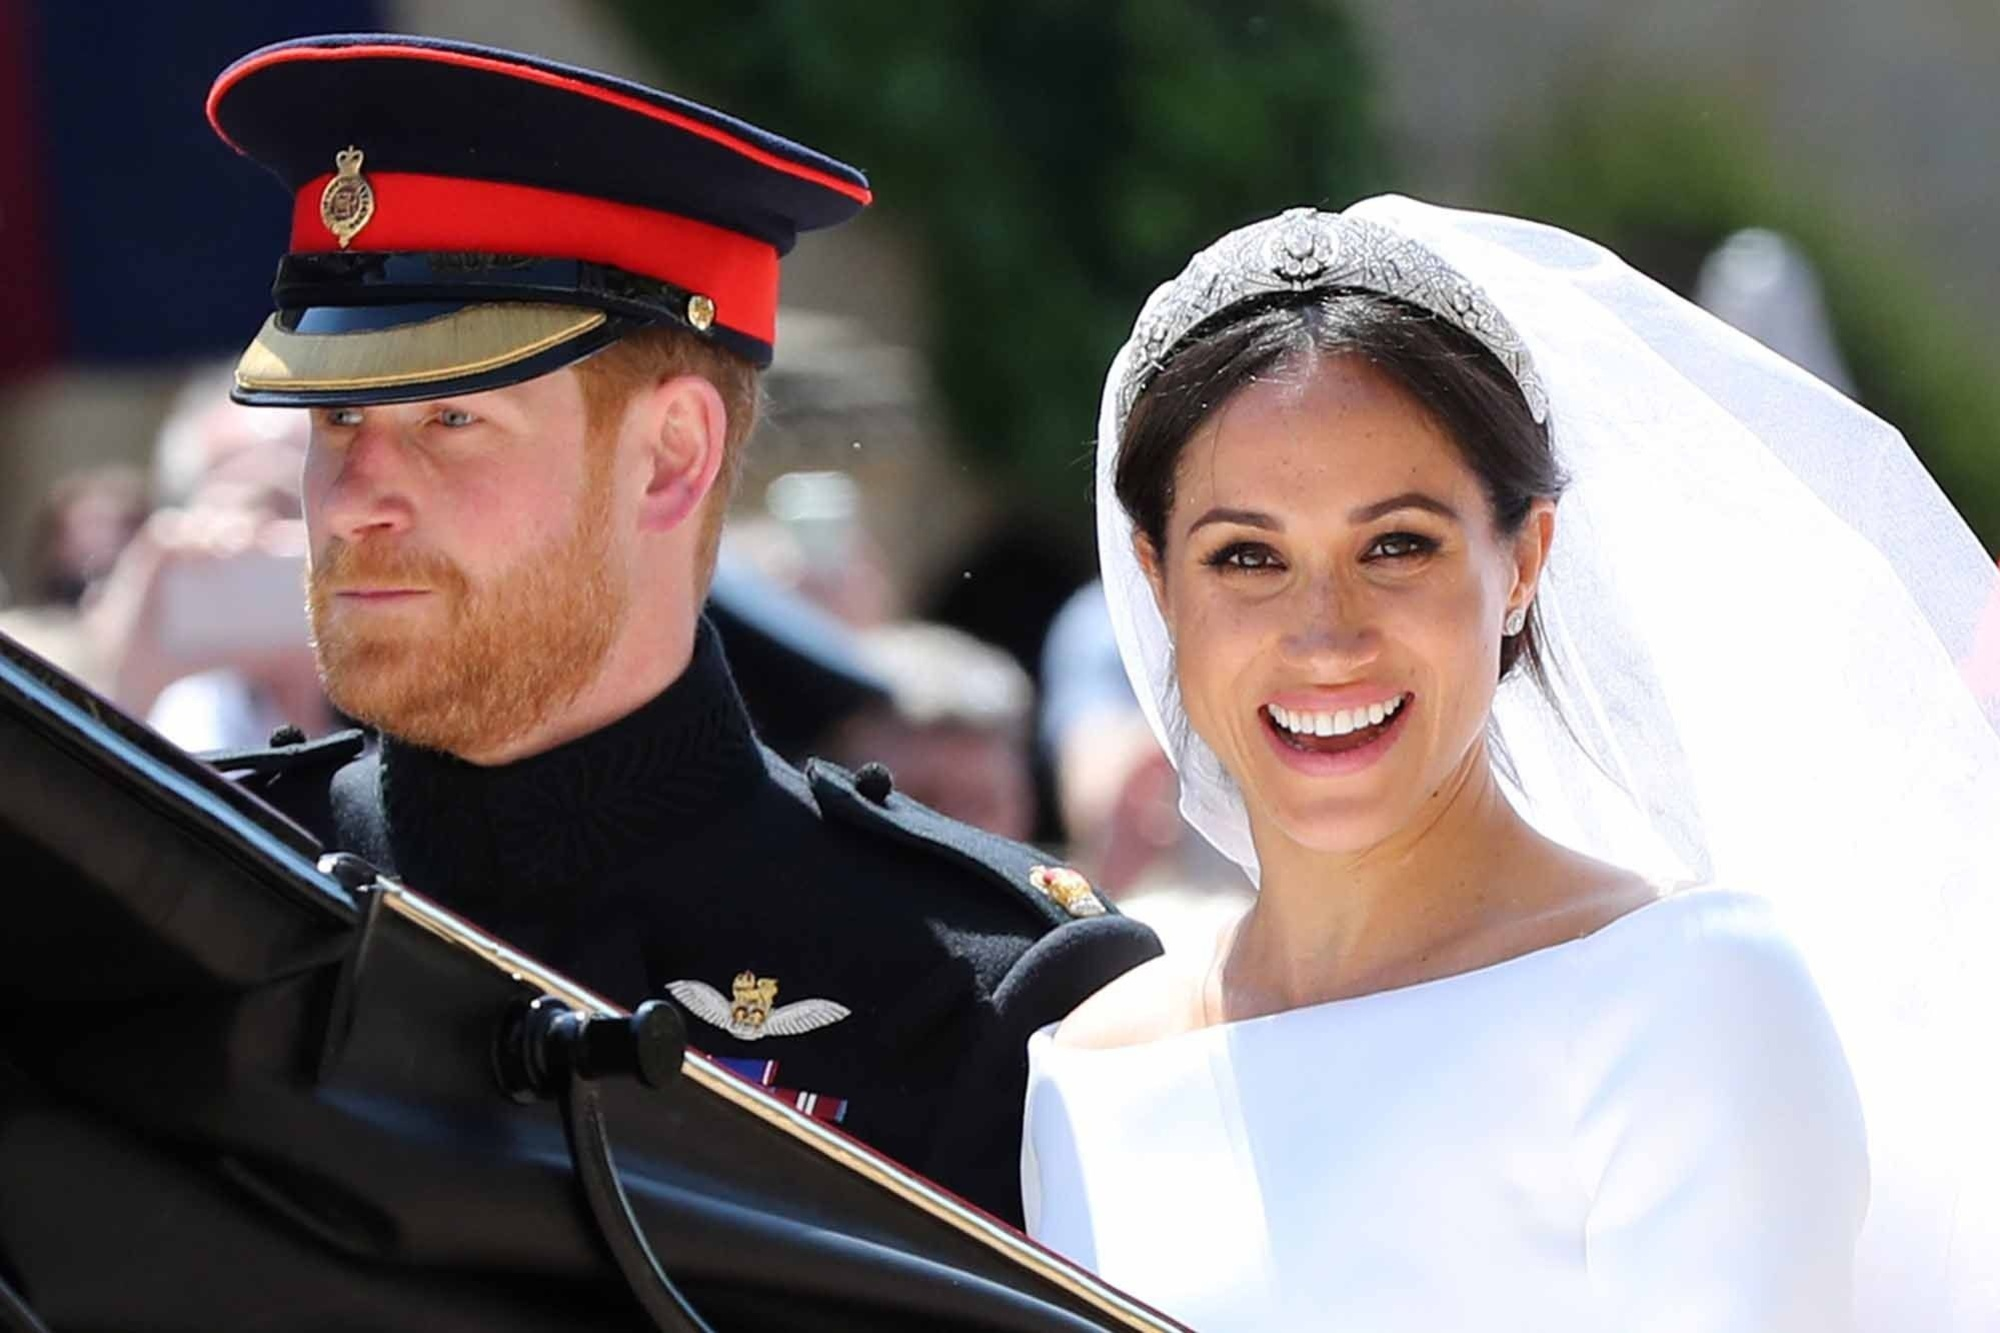 Britain's Prince Harry, Duke of Sussex and his wife Meghan, Duchess of Sussex begin their carriage procession in the Ascot Landau Carriage after their wedding ceremony at St George's Chapel, Windsor Castle, in Windsor, on May 19, 2018. / AFP PHOTO / POOL / Gareth Fuller, AFP